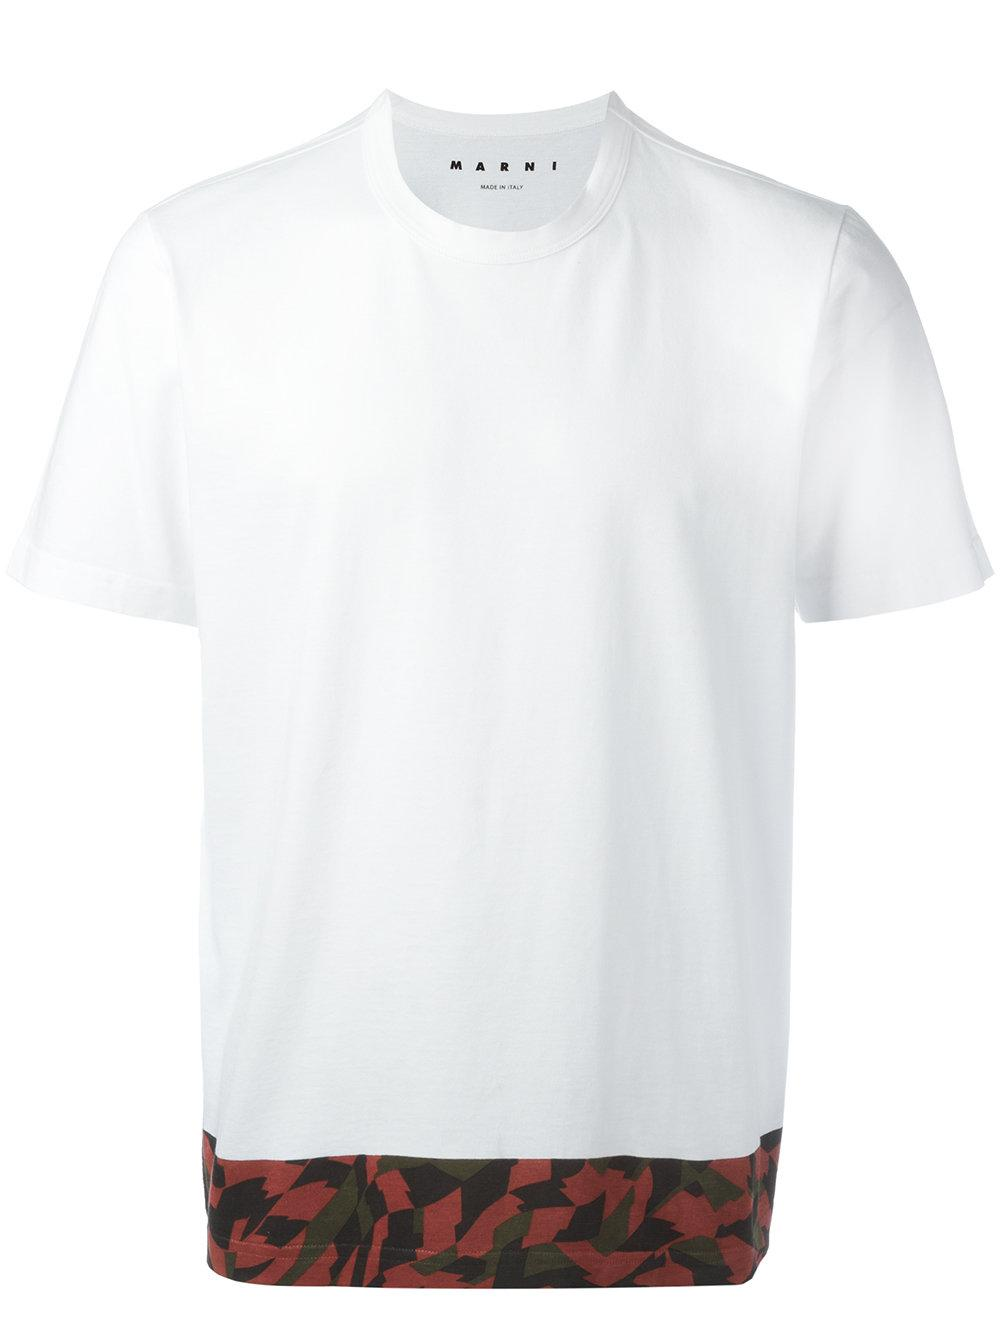 Marni printed trim t shirt in white for men lyst for T shirt printing mobile al